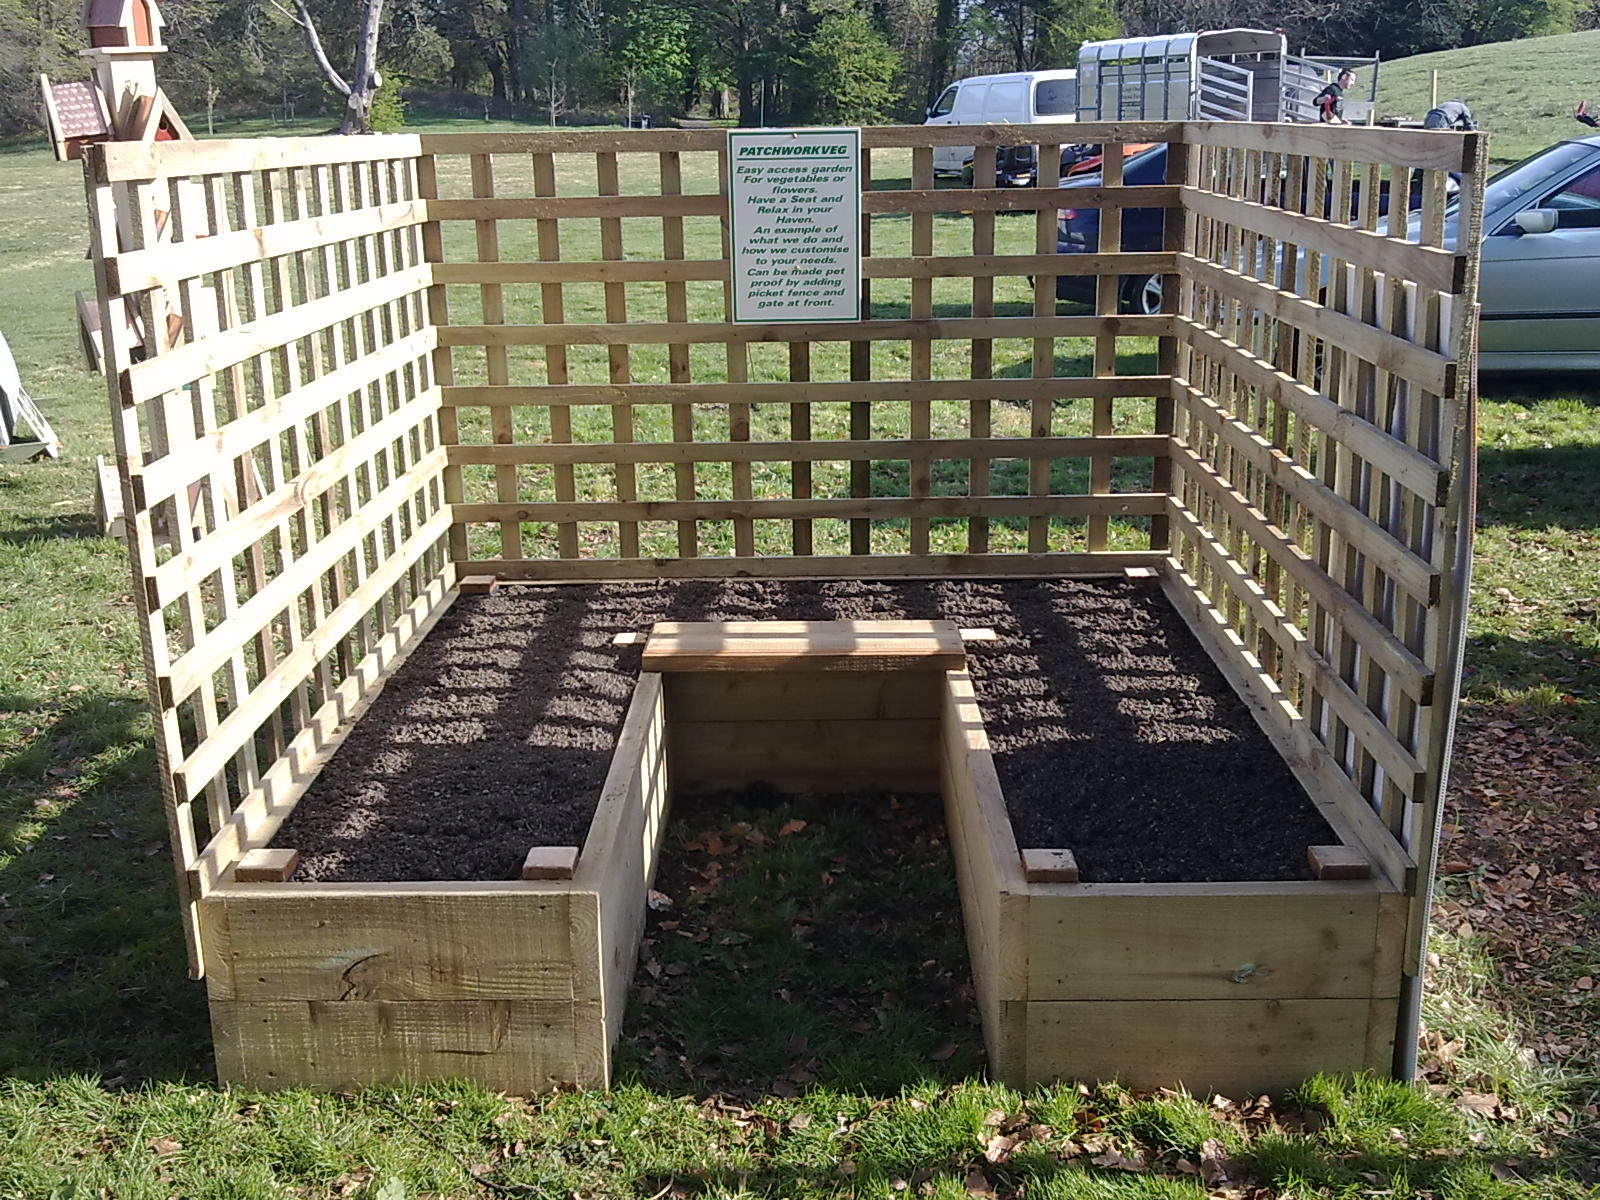 Patchworkveg Gardeners Vegetable Growing Website Premium Raised Bed Manufacturers And